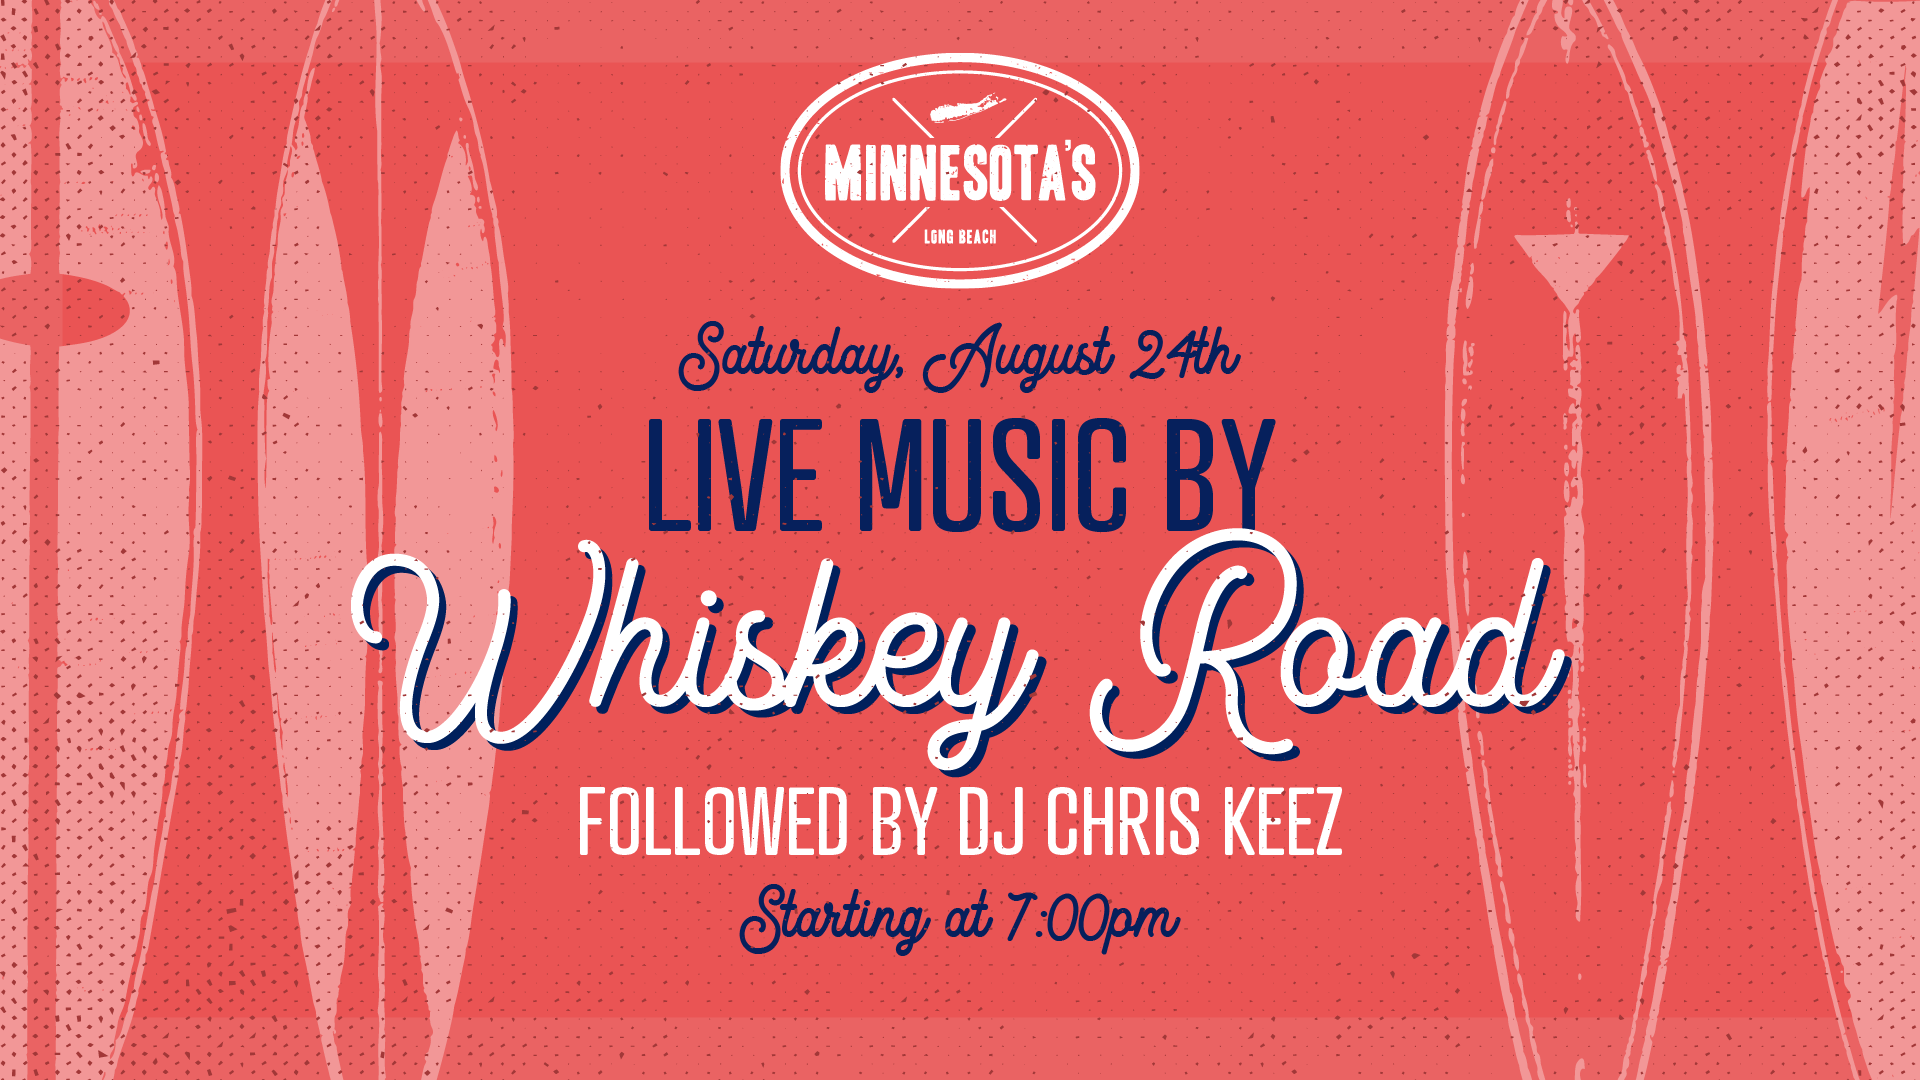 flyer for live music by como brother followed by dj chris keez at minnesotas on august 24th at 7pm